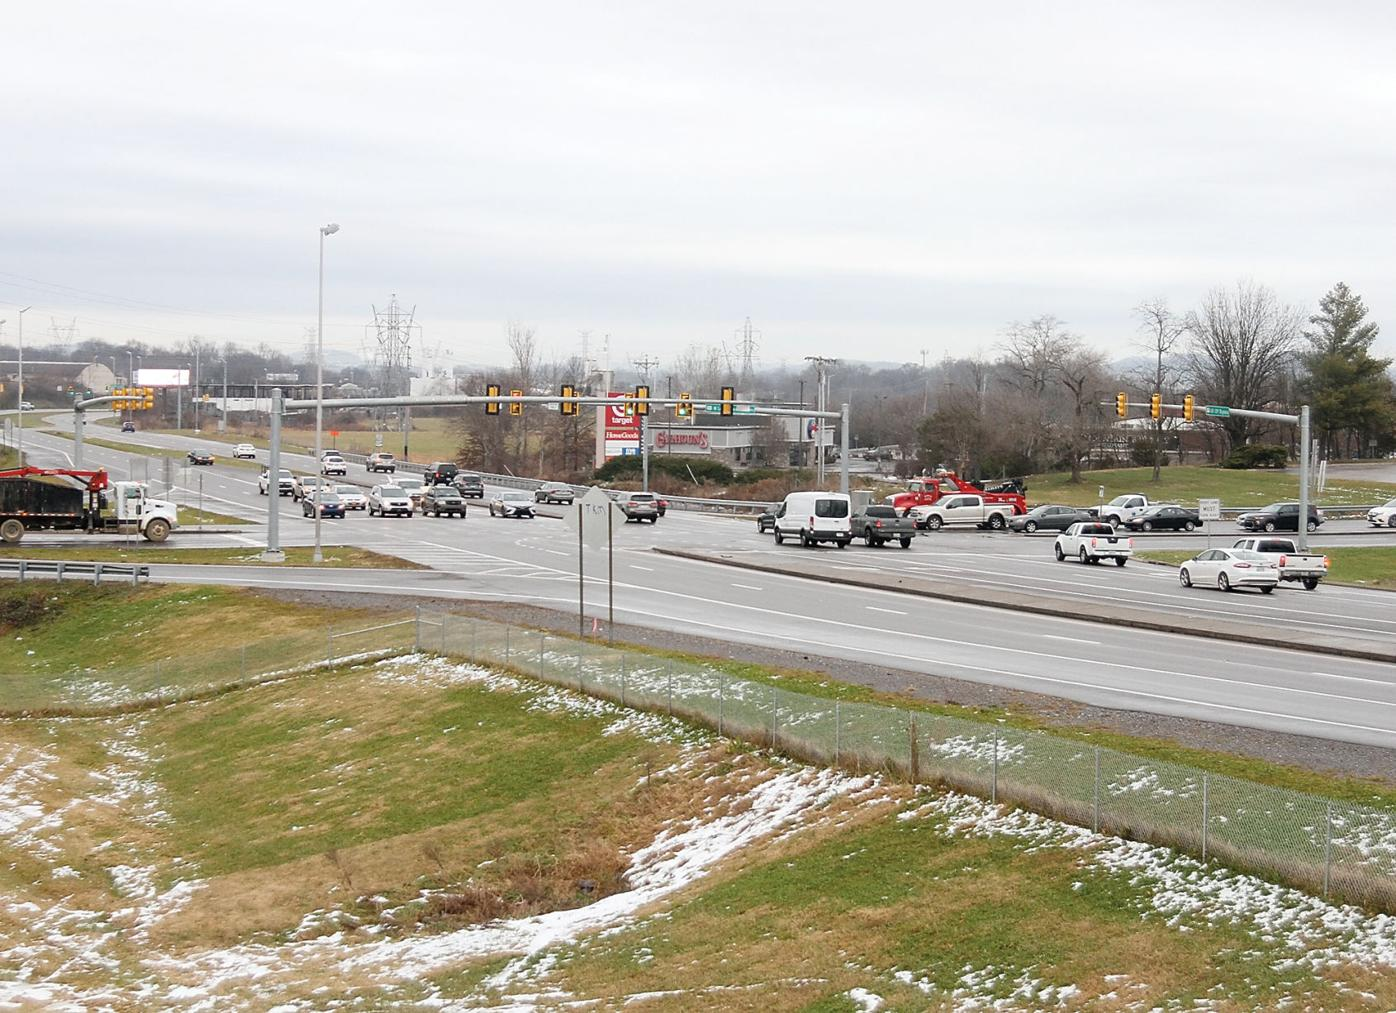 Hwy. 321 at 129 bypass